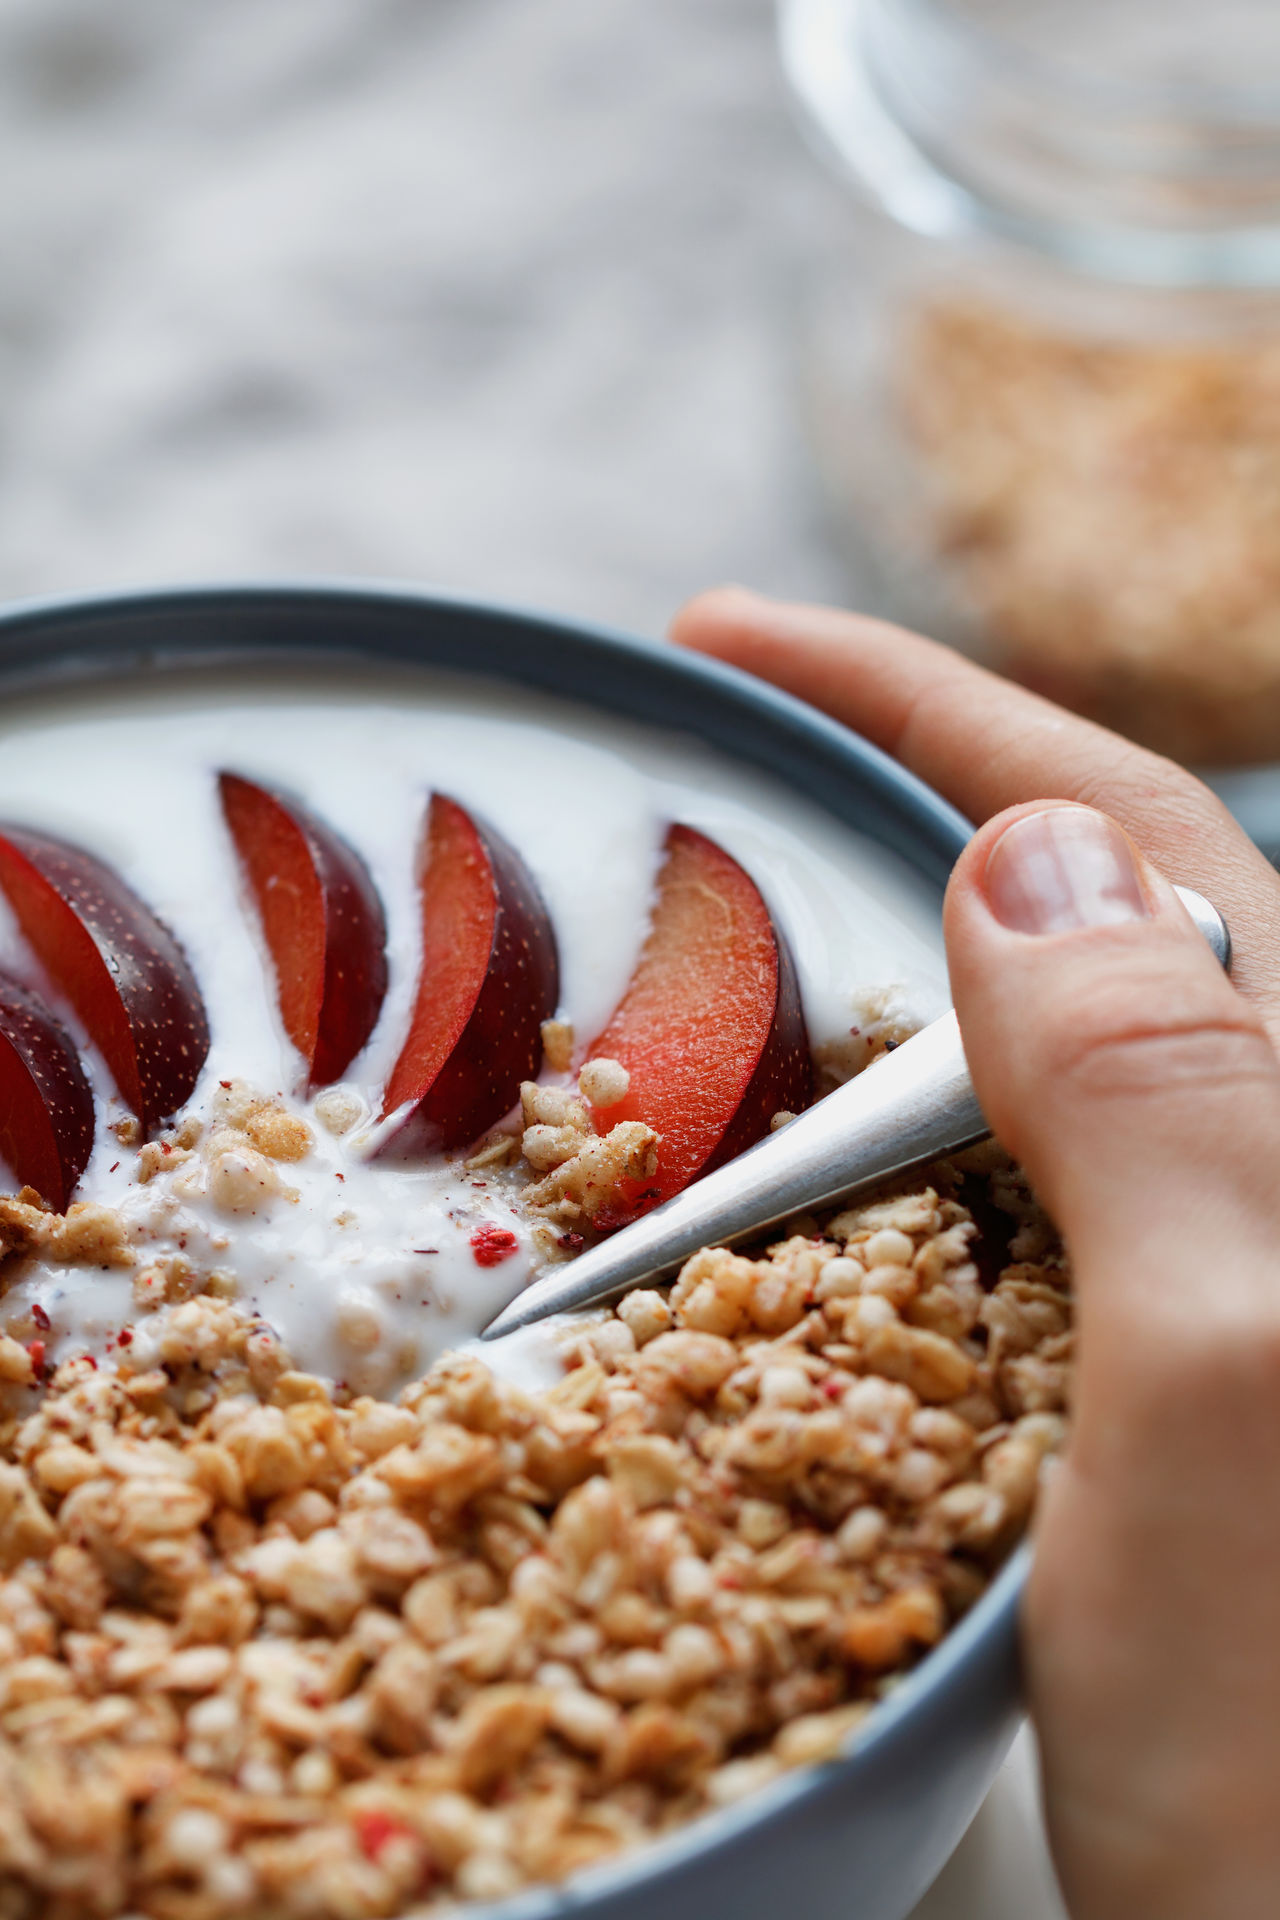 Bowl Breakfast Cereal Close-up Comfort Food Food Food And Drink Freshness Fruit Healthy Eating Healthy Lifestyle Holding Human Body Part Human Hand One Person Ready-to-eat SLICE